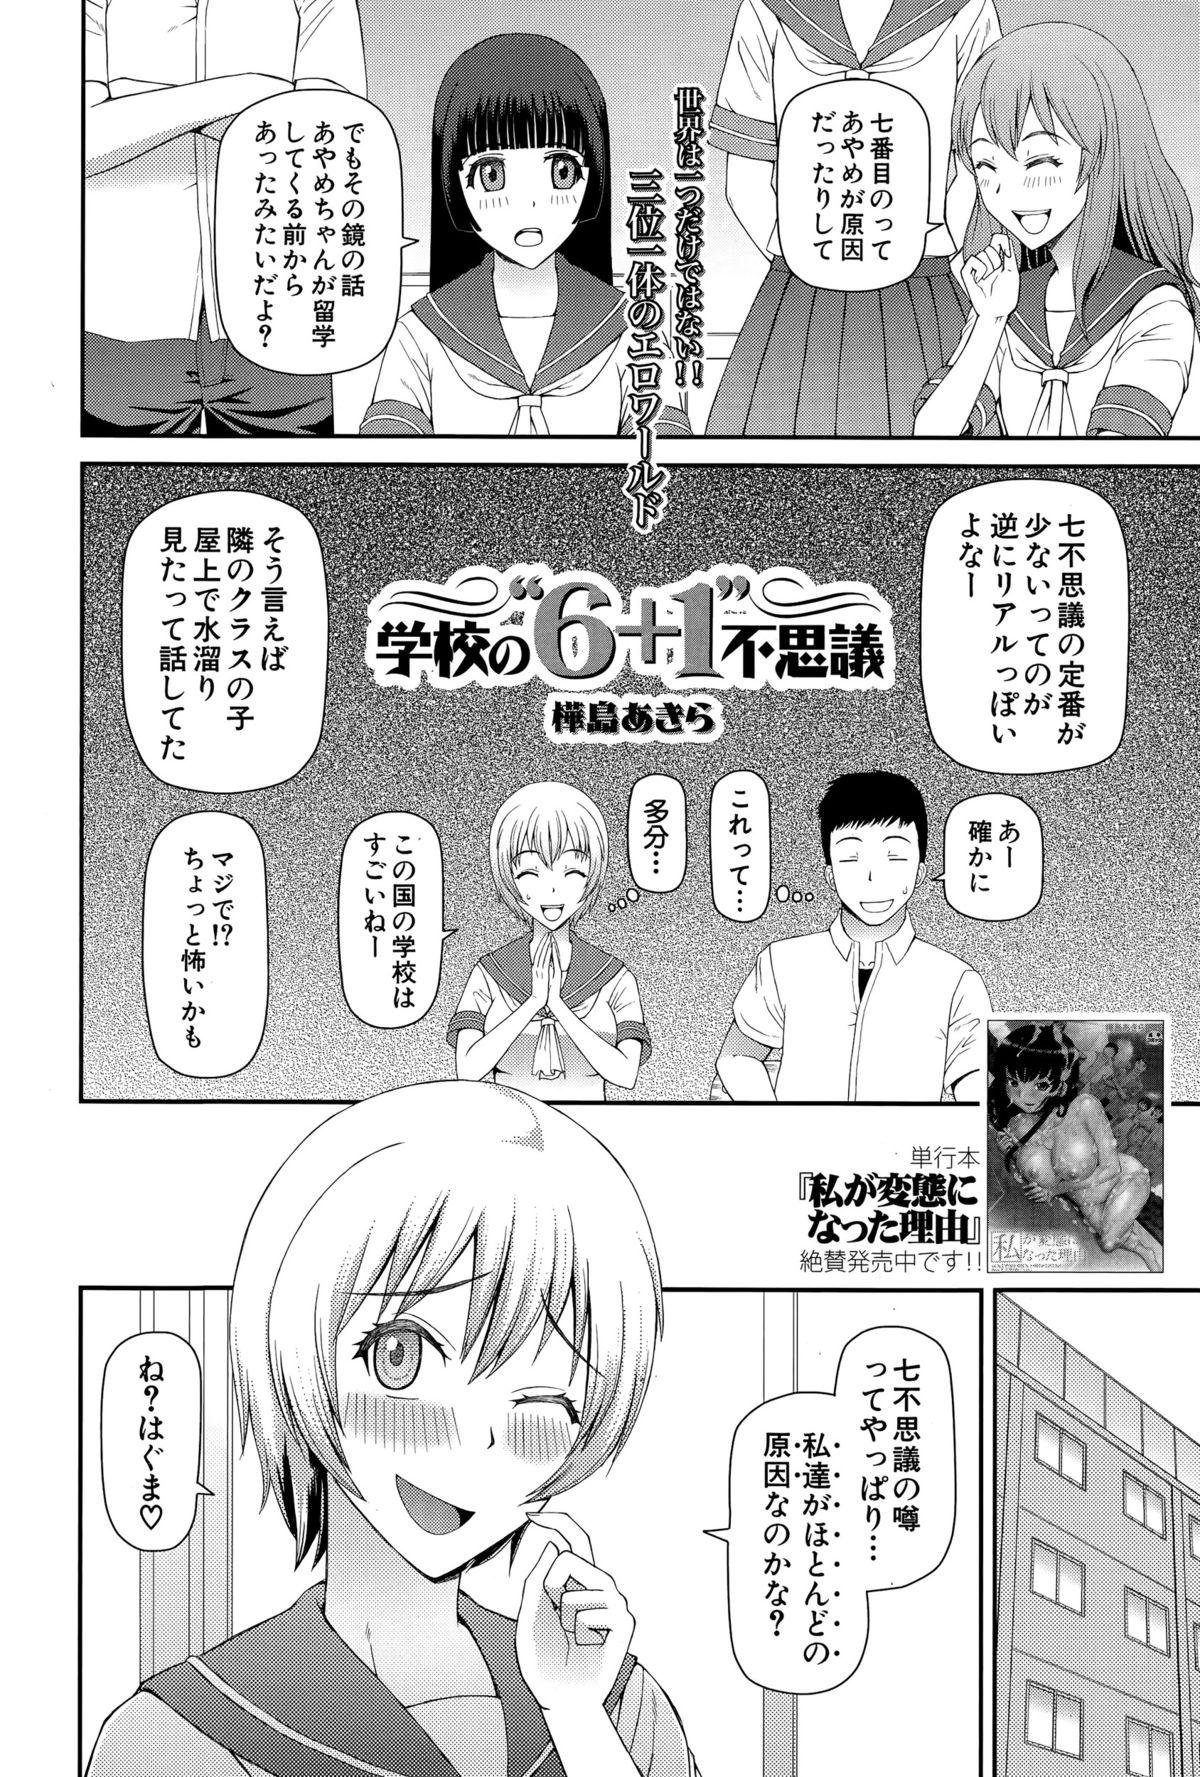 BUSTER COMIC 2015-07 199